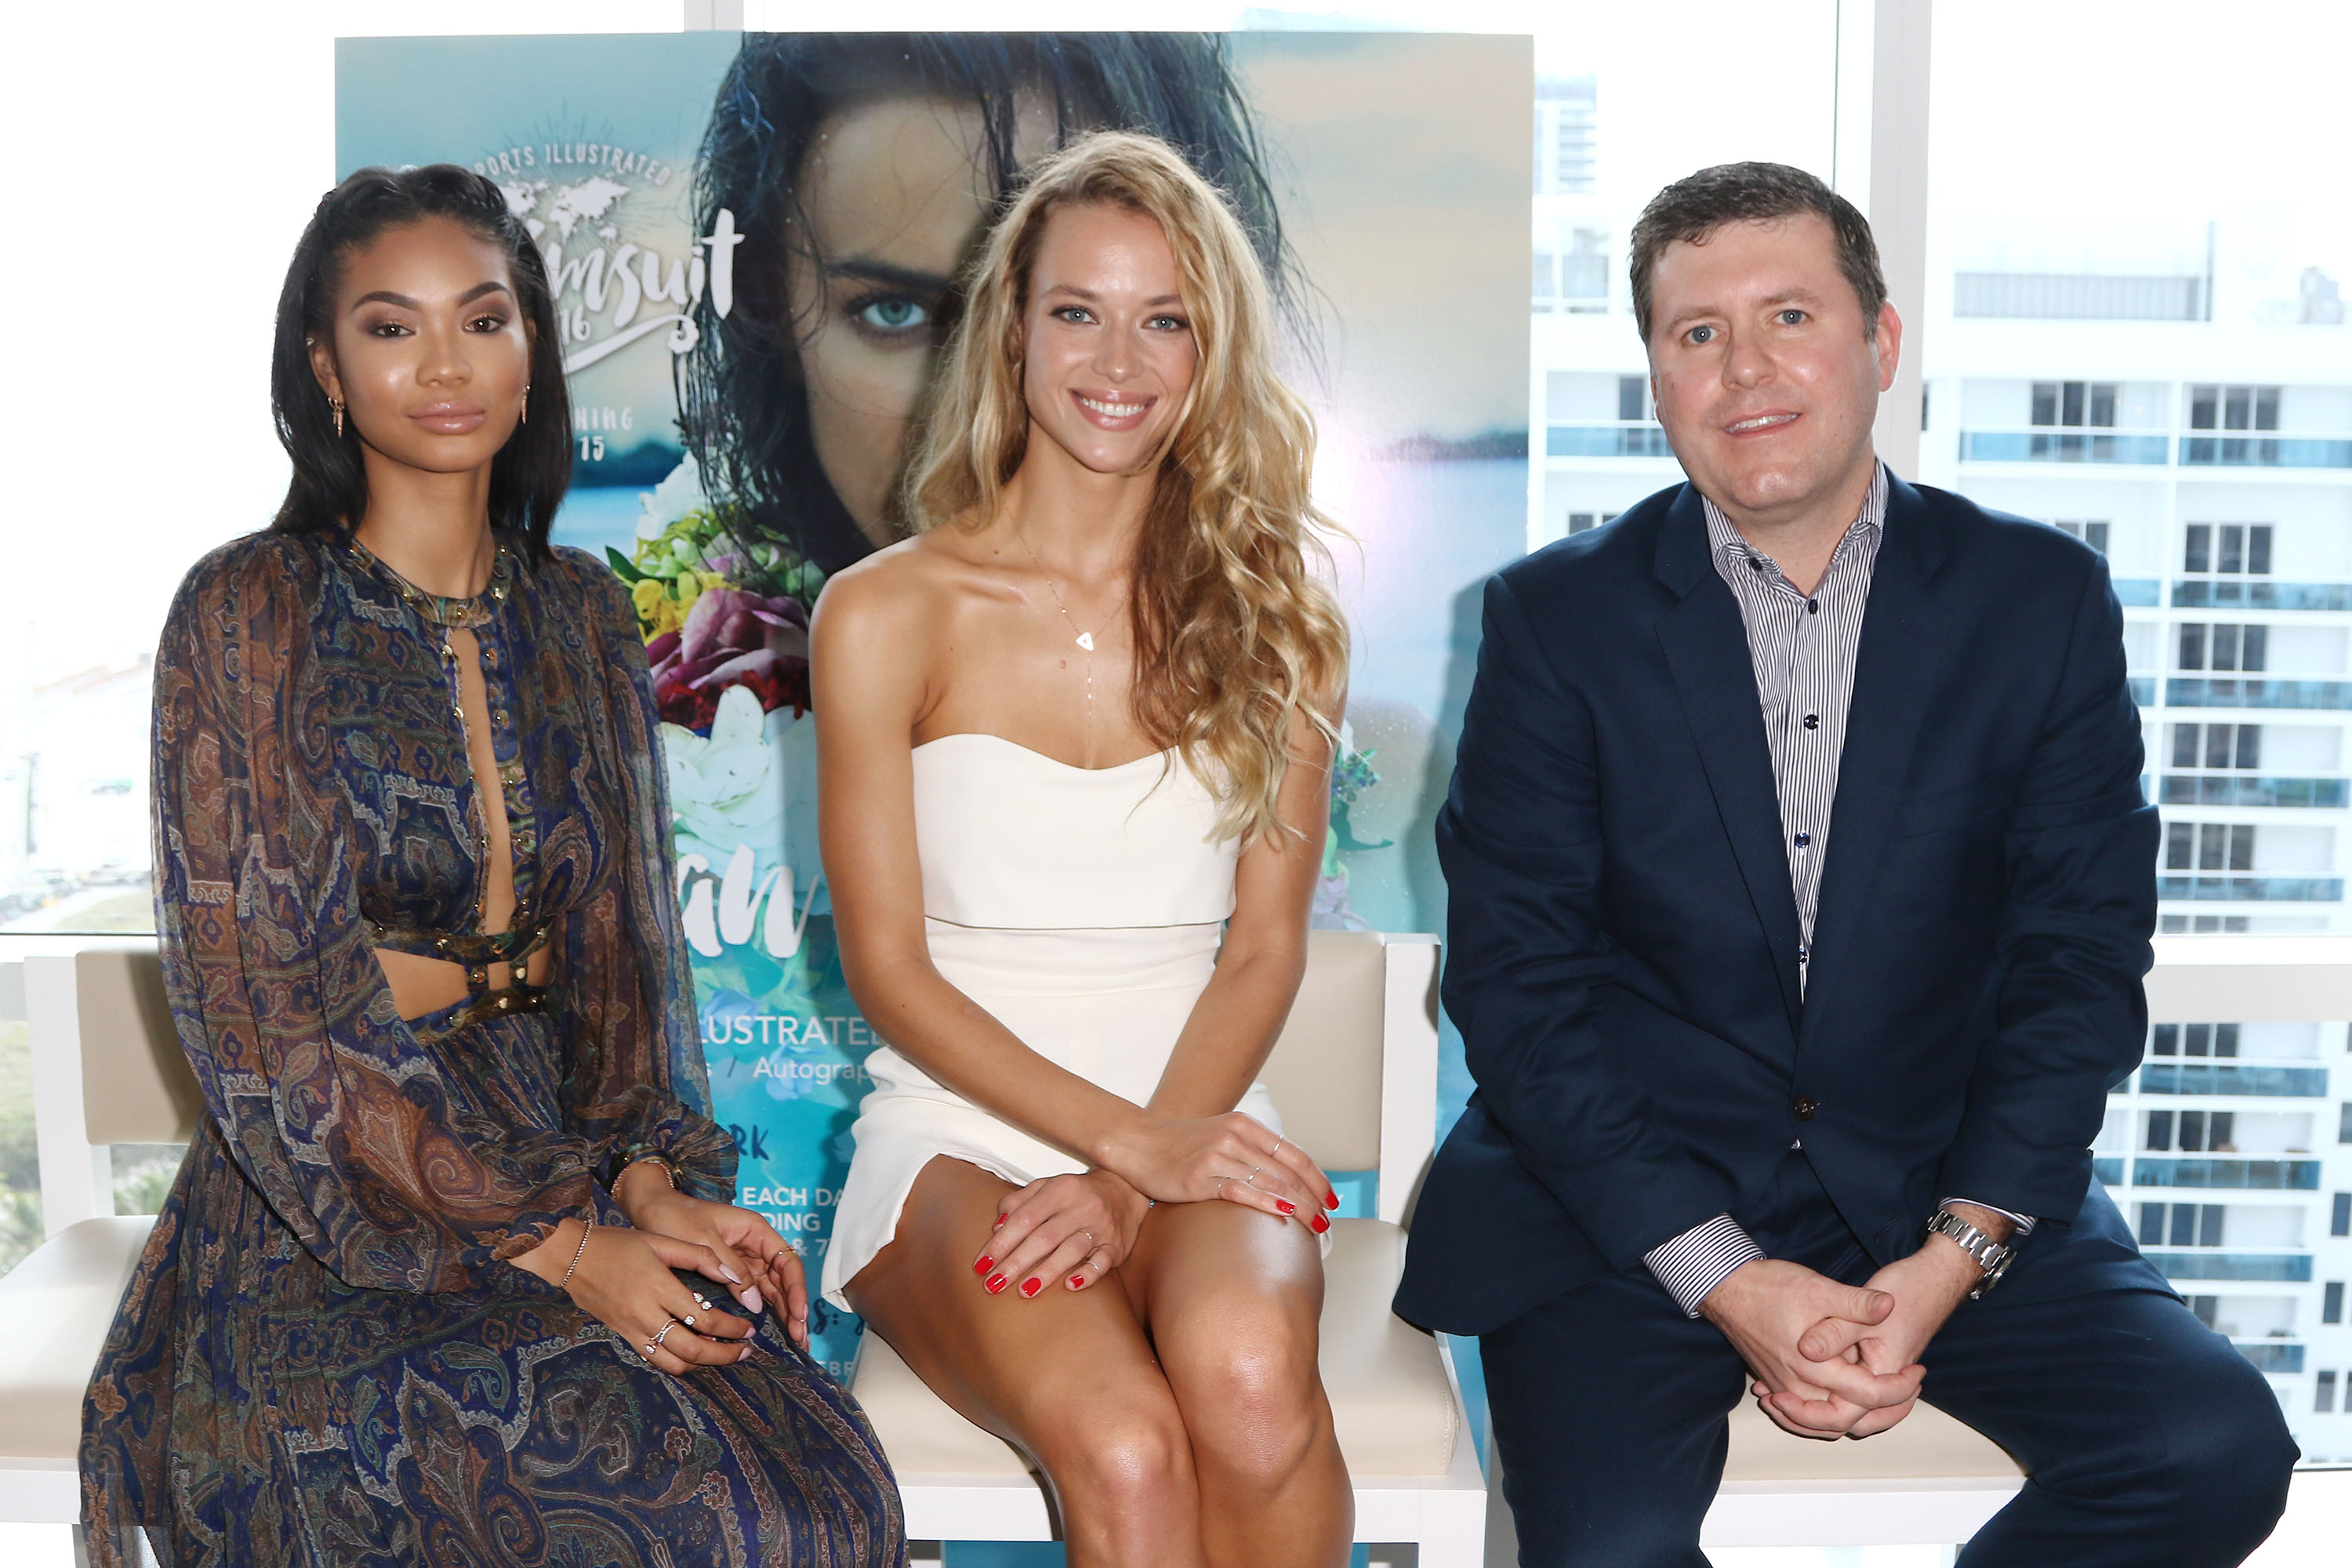 Sports Illustrated Swimsuit Models Hannah Ferguson and Chanel Iman, with SI's Publisher Brendan Ripp, reveal SI Swimsuit 2016 launch week events in Miami at 1 Hotel & Homes South Beach